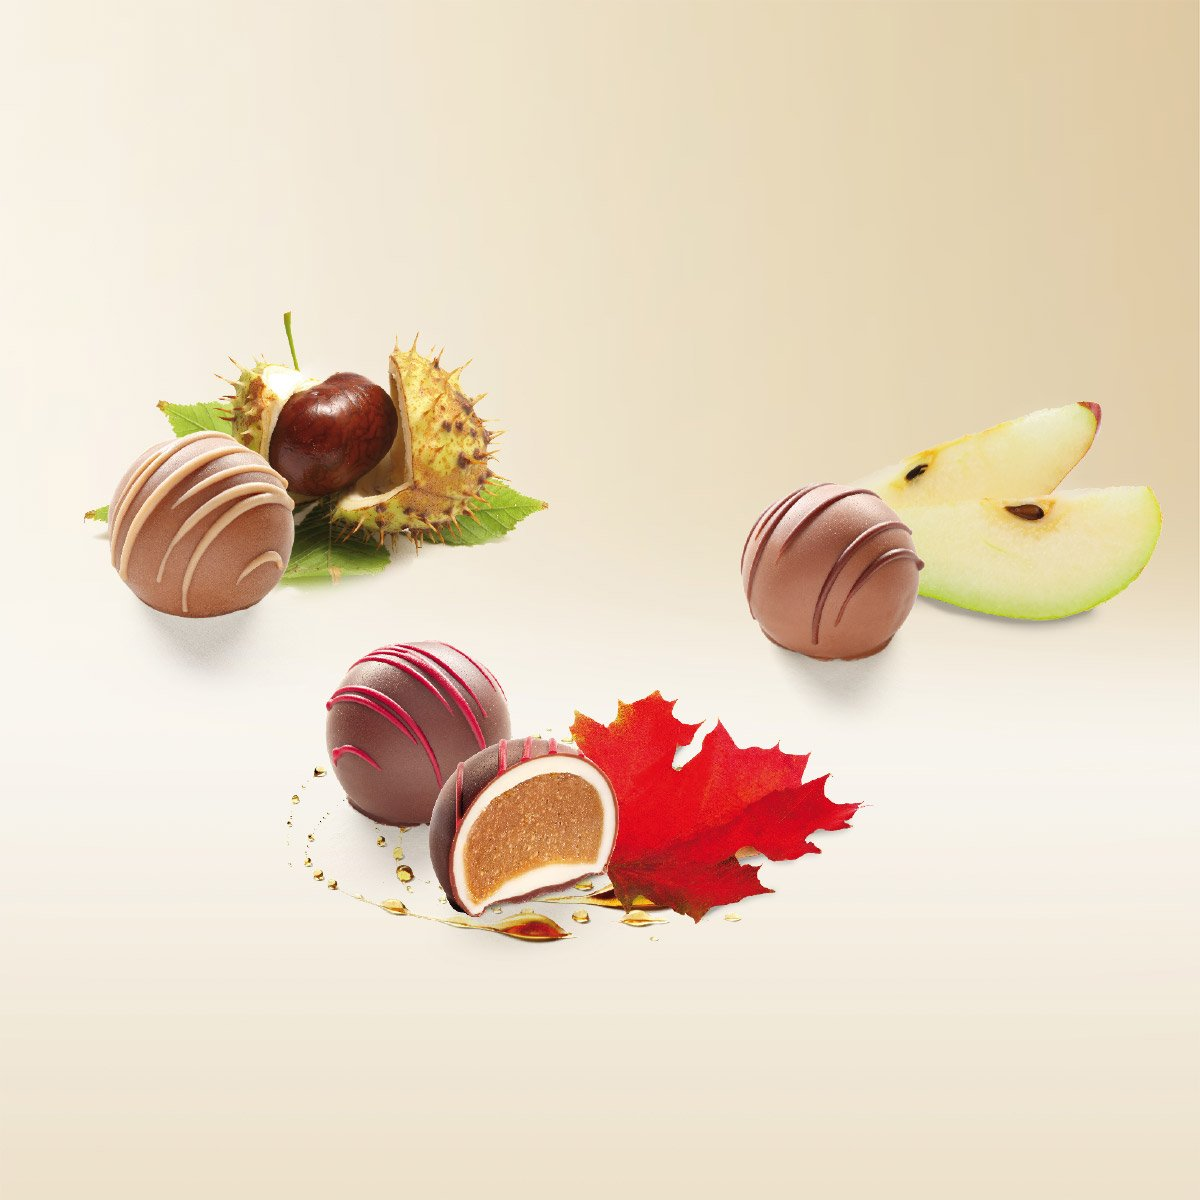 Les Truffes assorties maple, chestnut and pear 135g